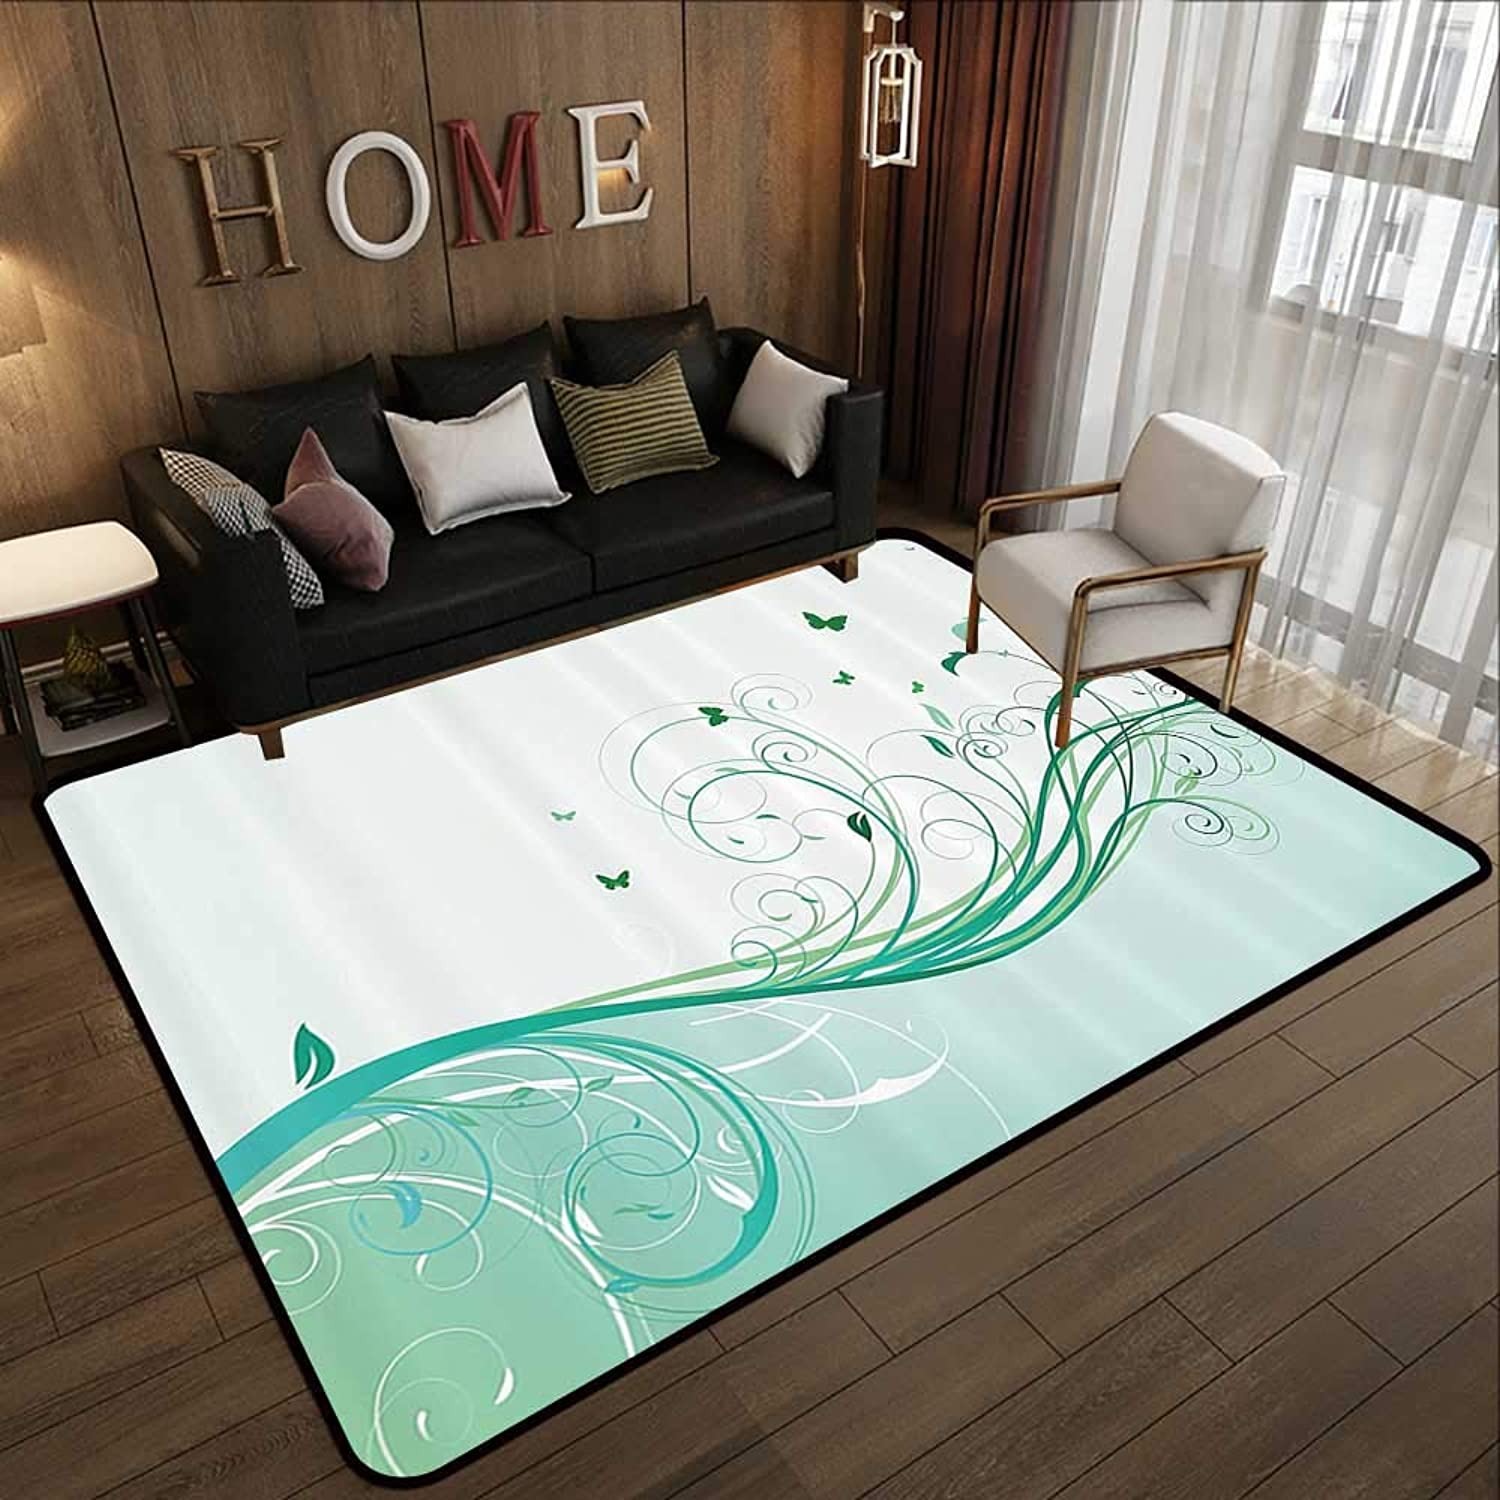 Carpet mat,Turquoise,Illustration of Floral Victorian Style Curvy Lines Wave Water Butterfly Pattern Design,s 35 x 59  Floor Mat Entrance Doormat